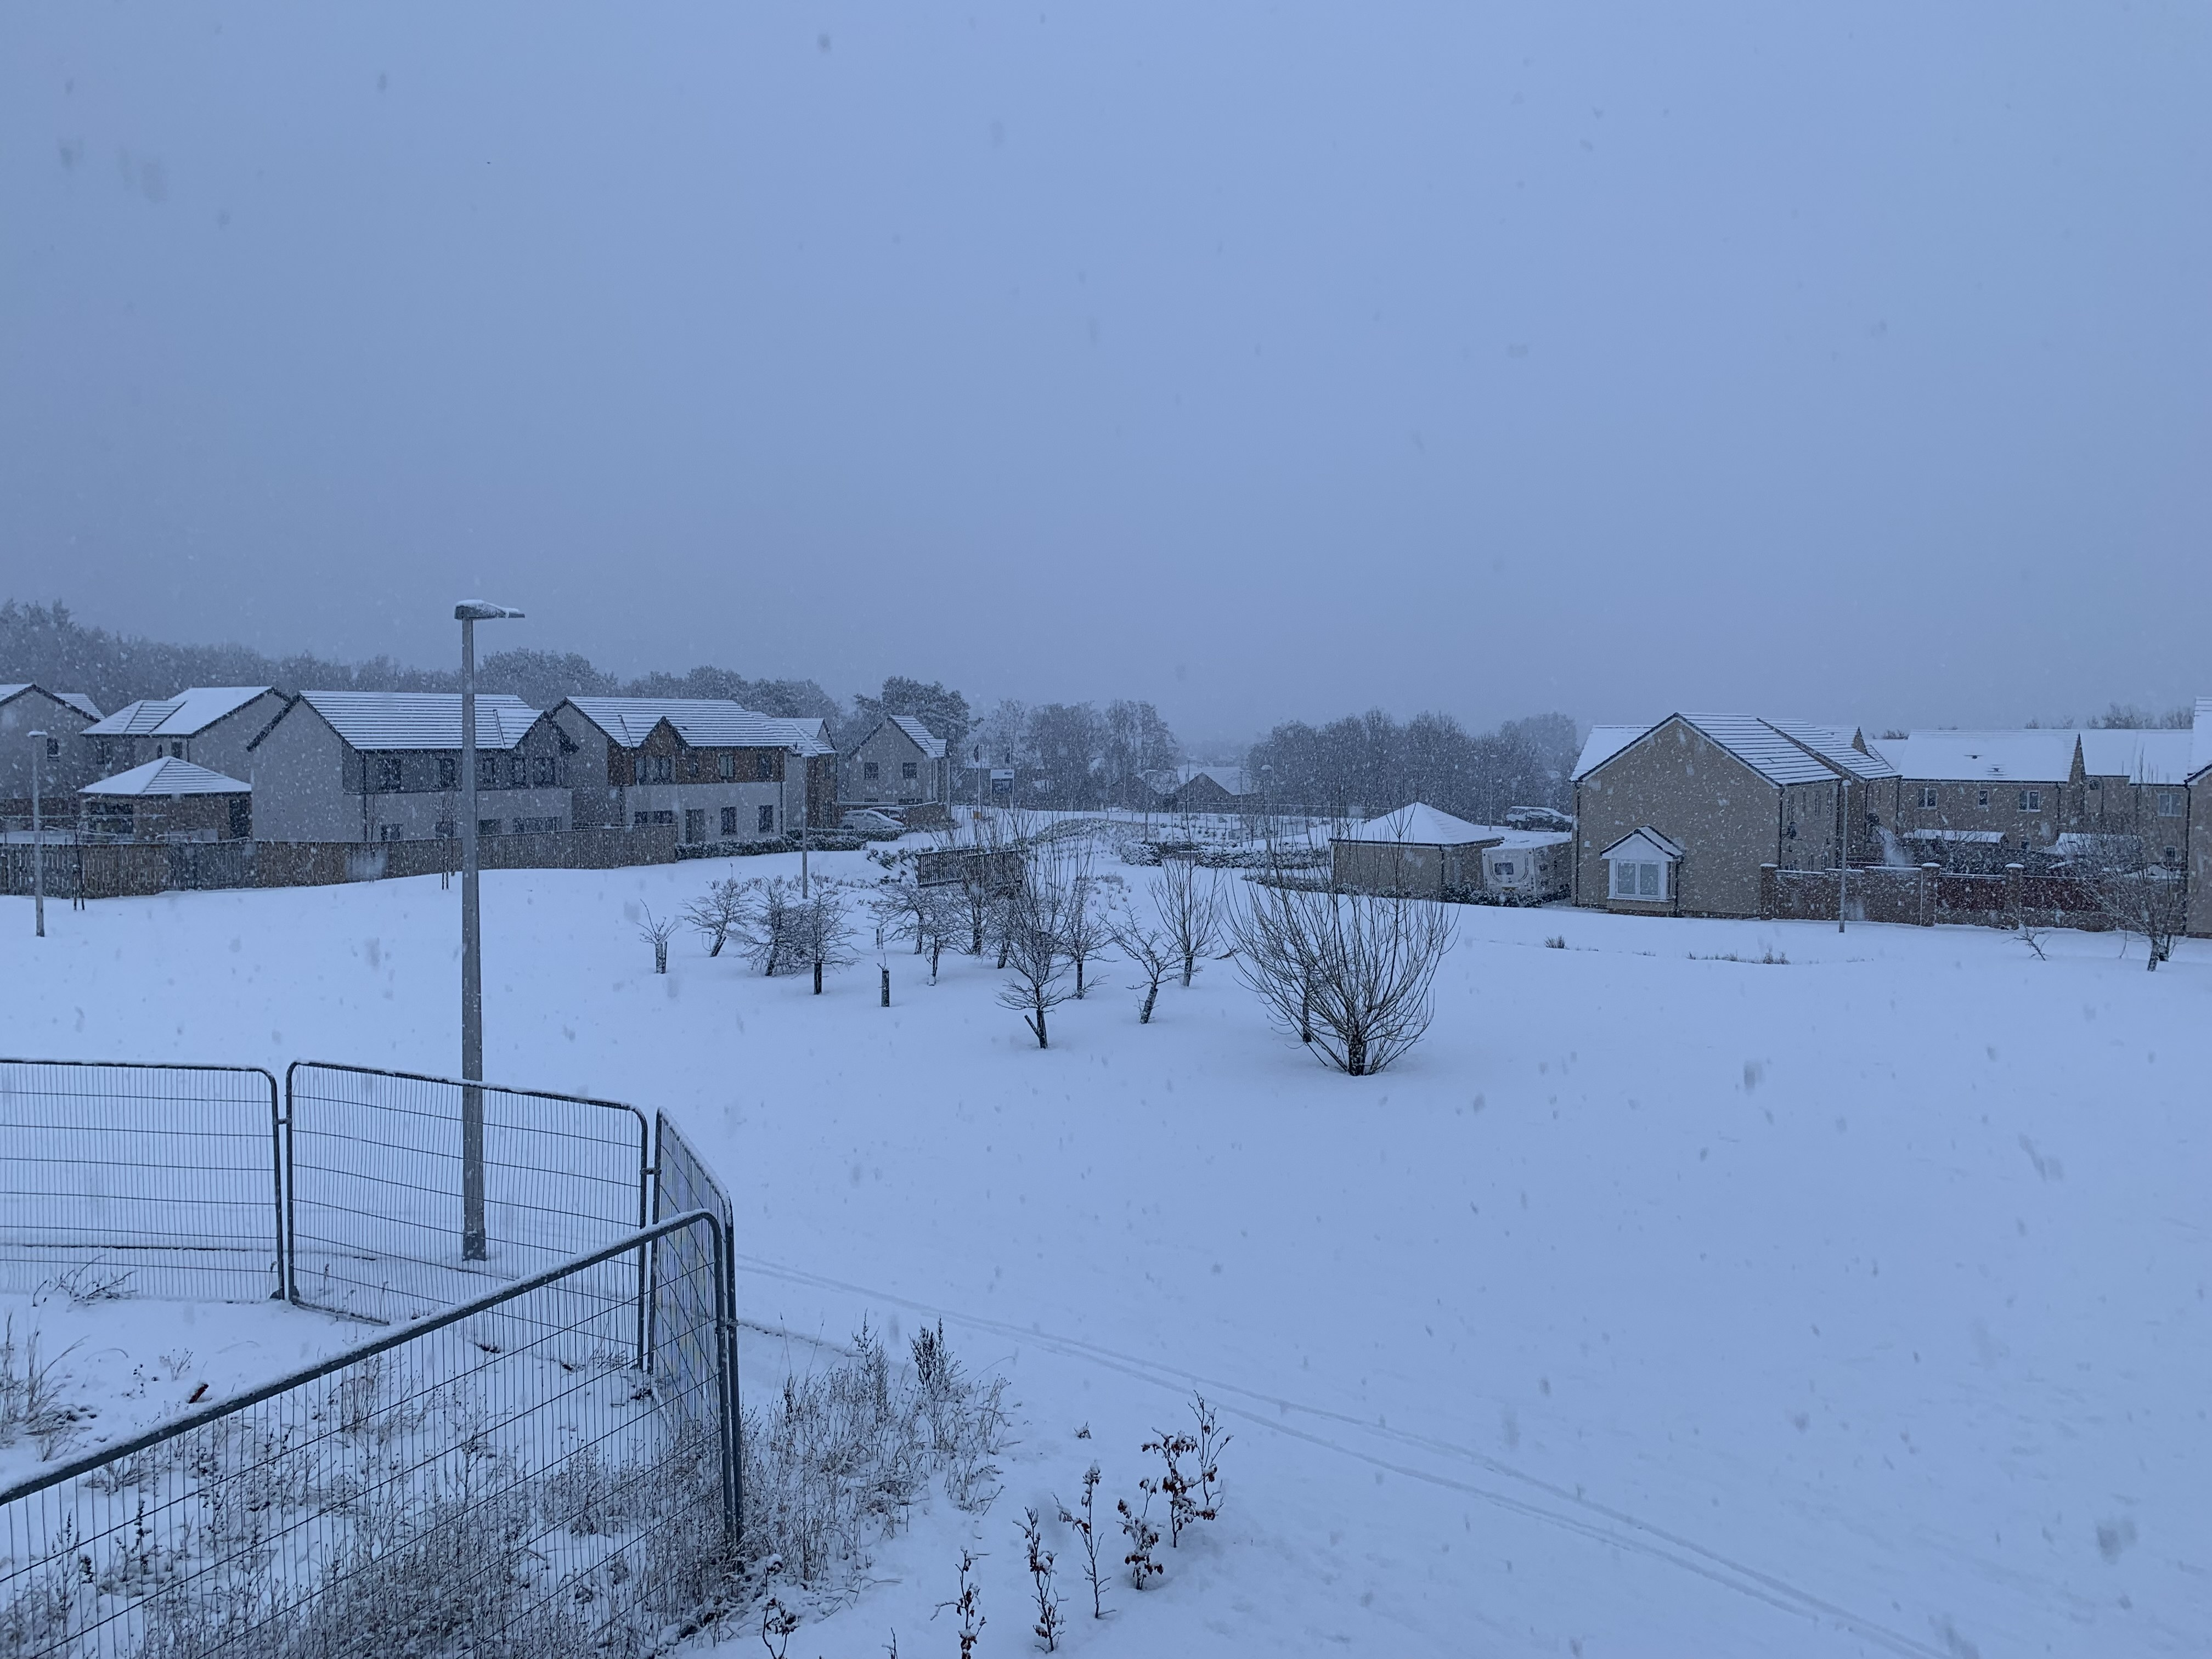 A wintry scene in the north-east this afternoon